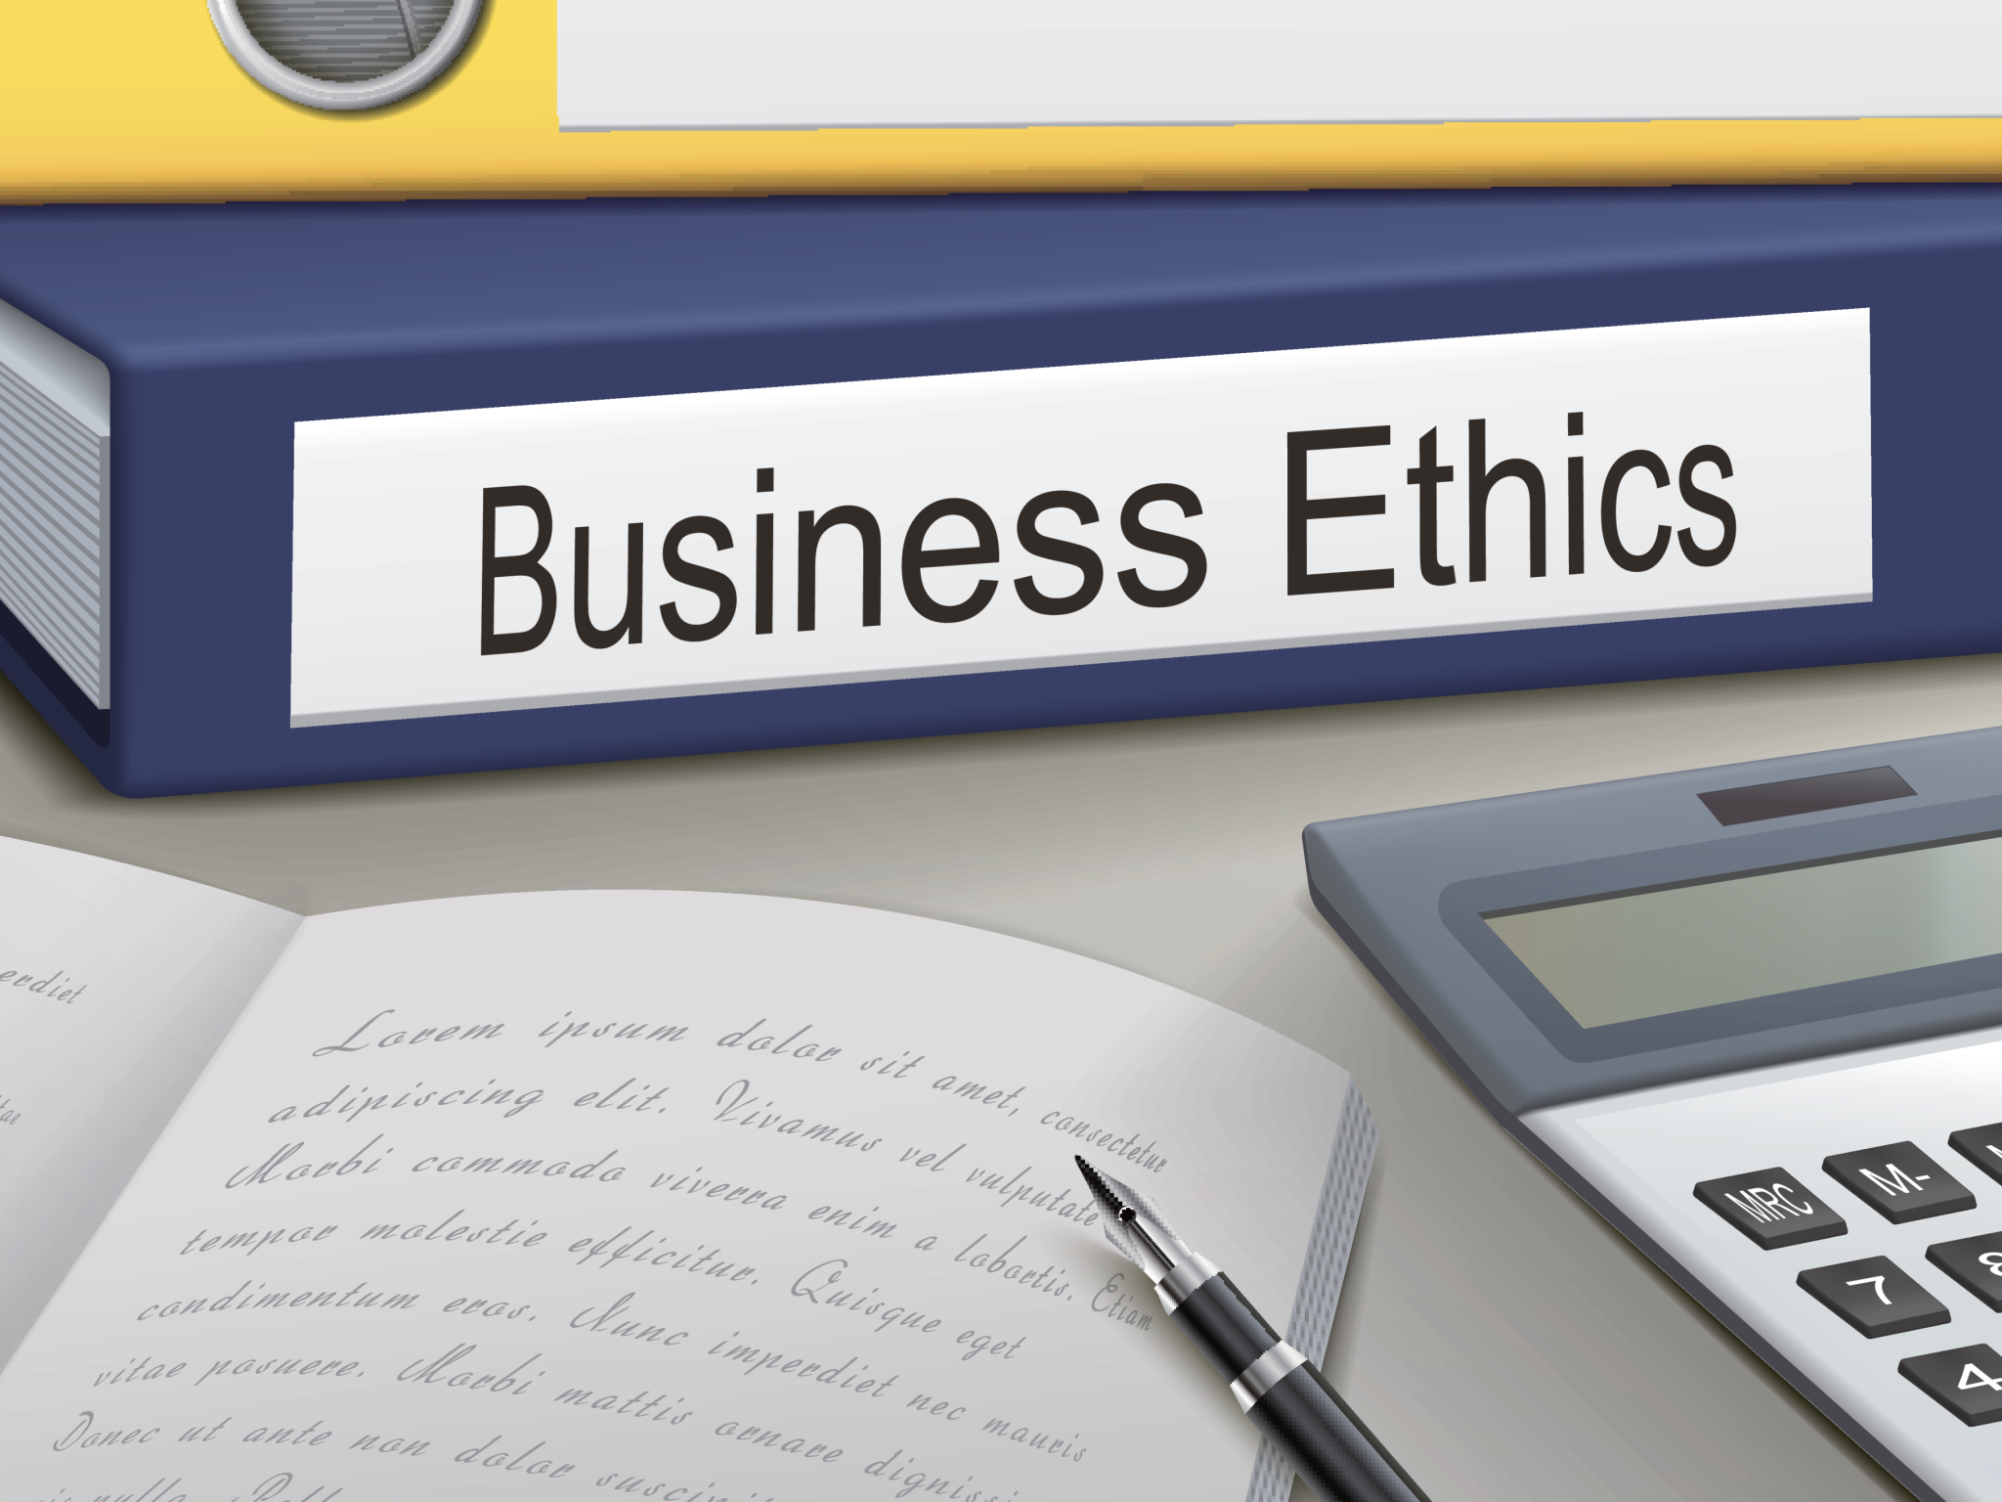 business-ethics-binder.jpg